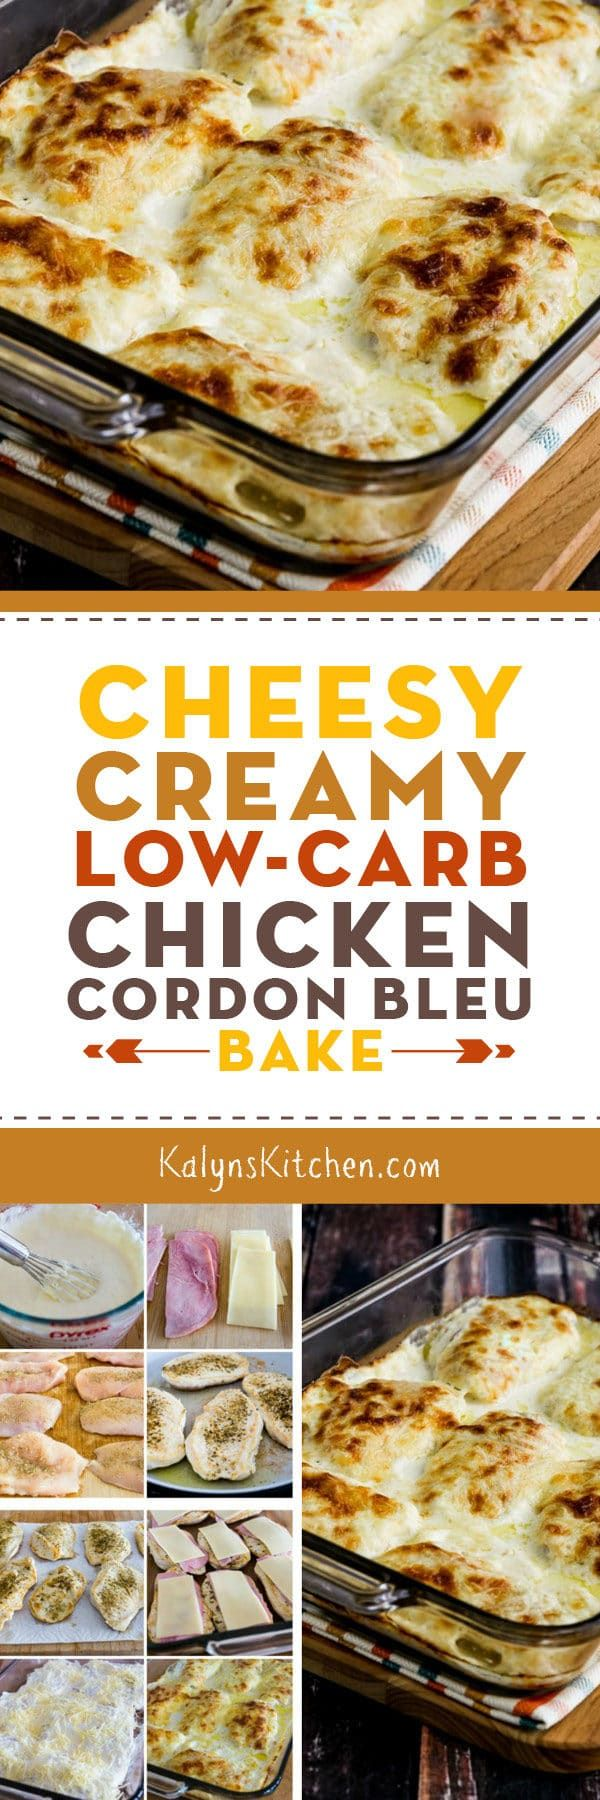 Cheesy Creamy Low-Carb Chicken Cordon Bleu Bake is a delicious low-carb casserole with layers of chicken, ham, and cheese with a creamy sauce. If you like those flavors, you'll love this recipe. [found on KalynsKitchen.com] #LowCarb #LowCarbCasserole #LowCarbChickenCordonBleu #ChickenCordonBleu